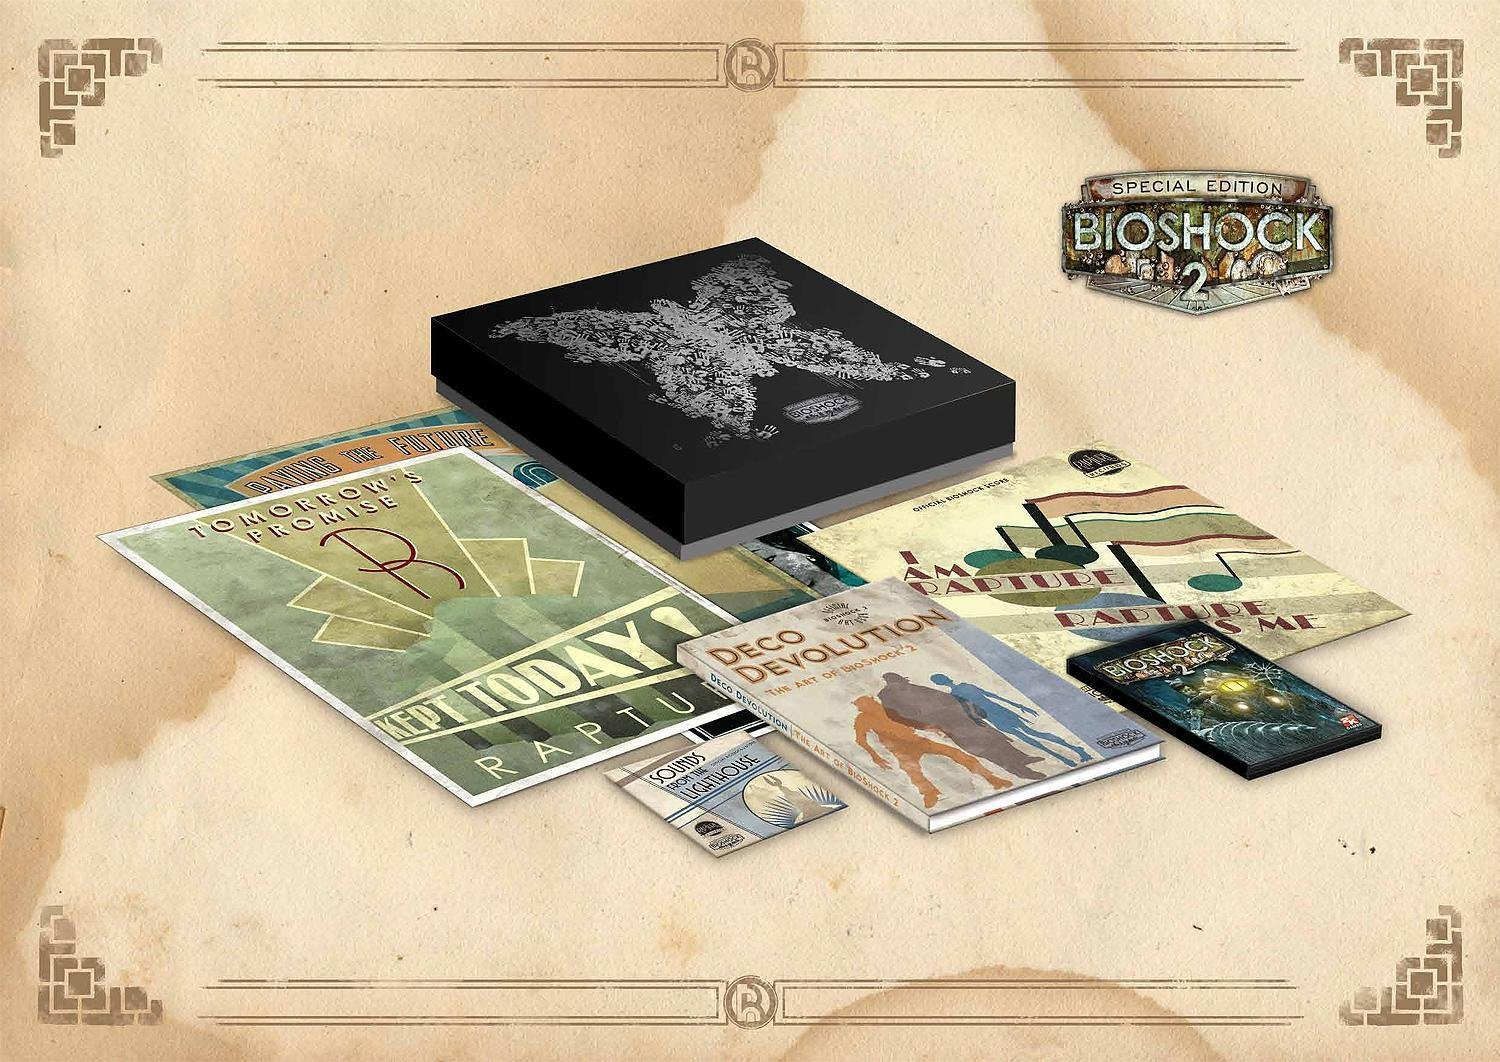 There S A The Art Of Bioshock Infinite Book But Is There